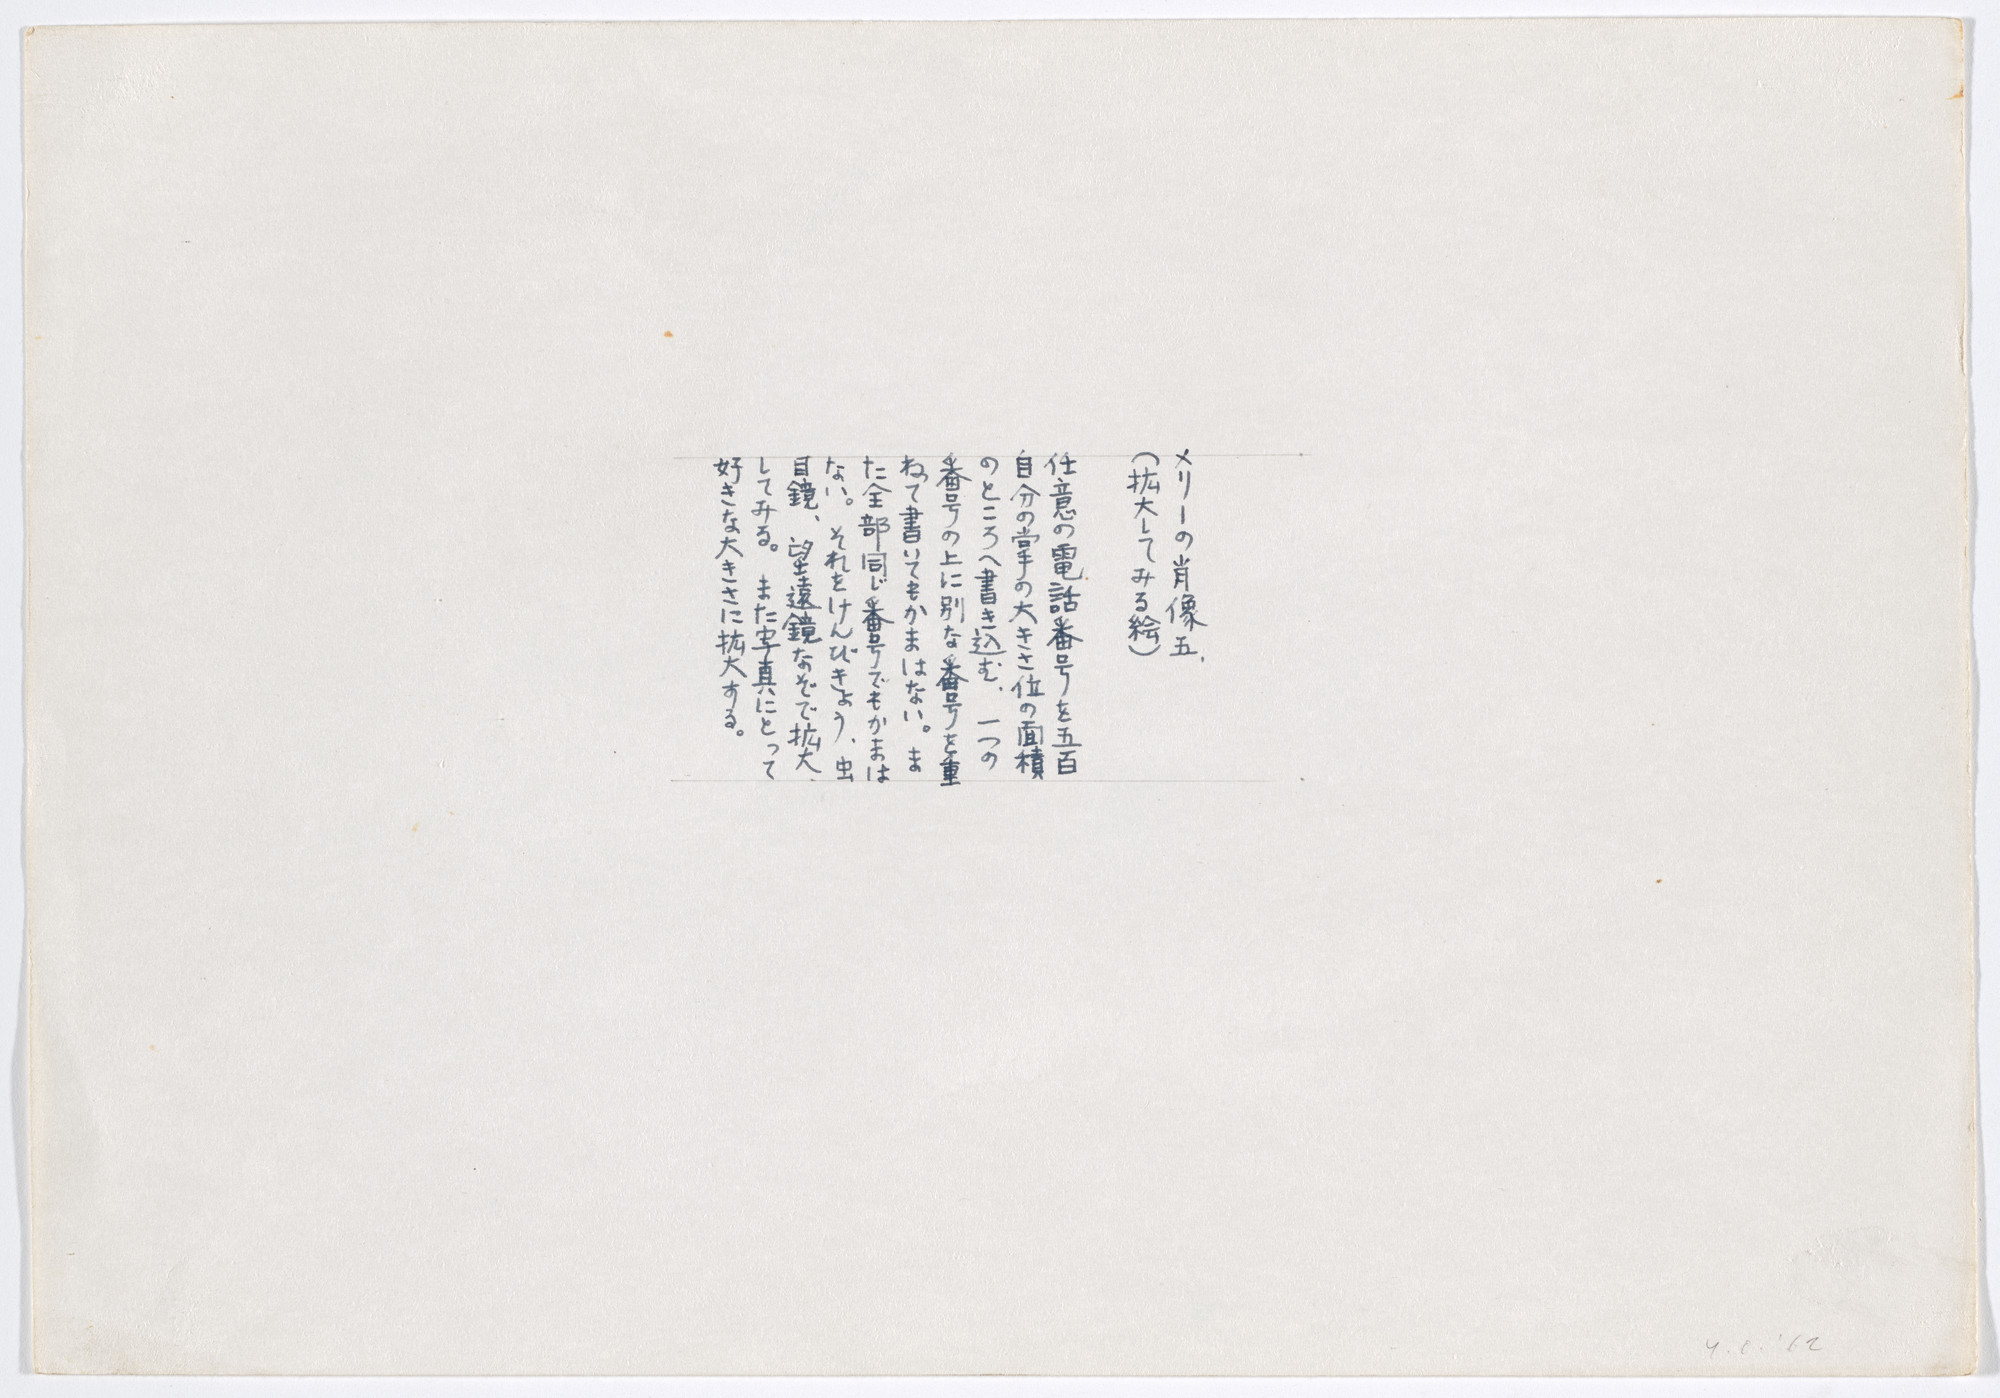 Yoko Ono. Painting to Enlarge and See. 1961